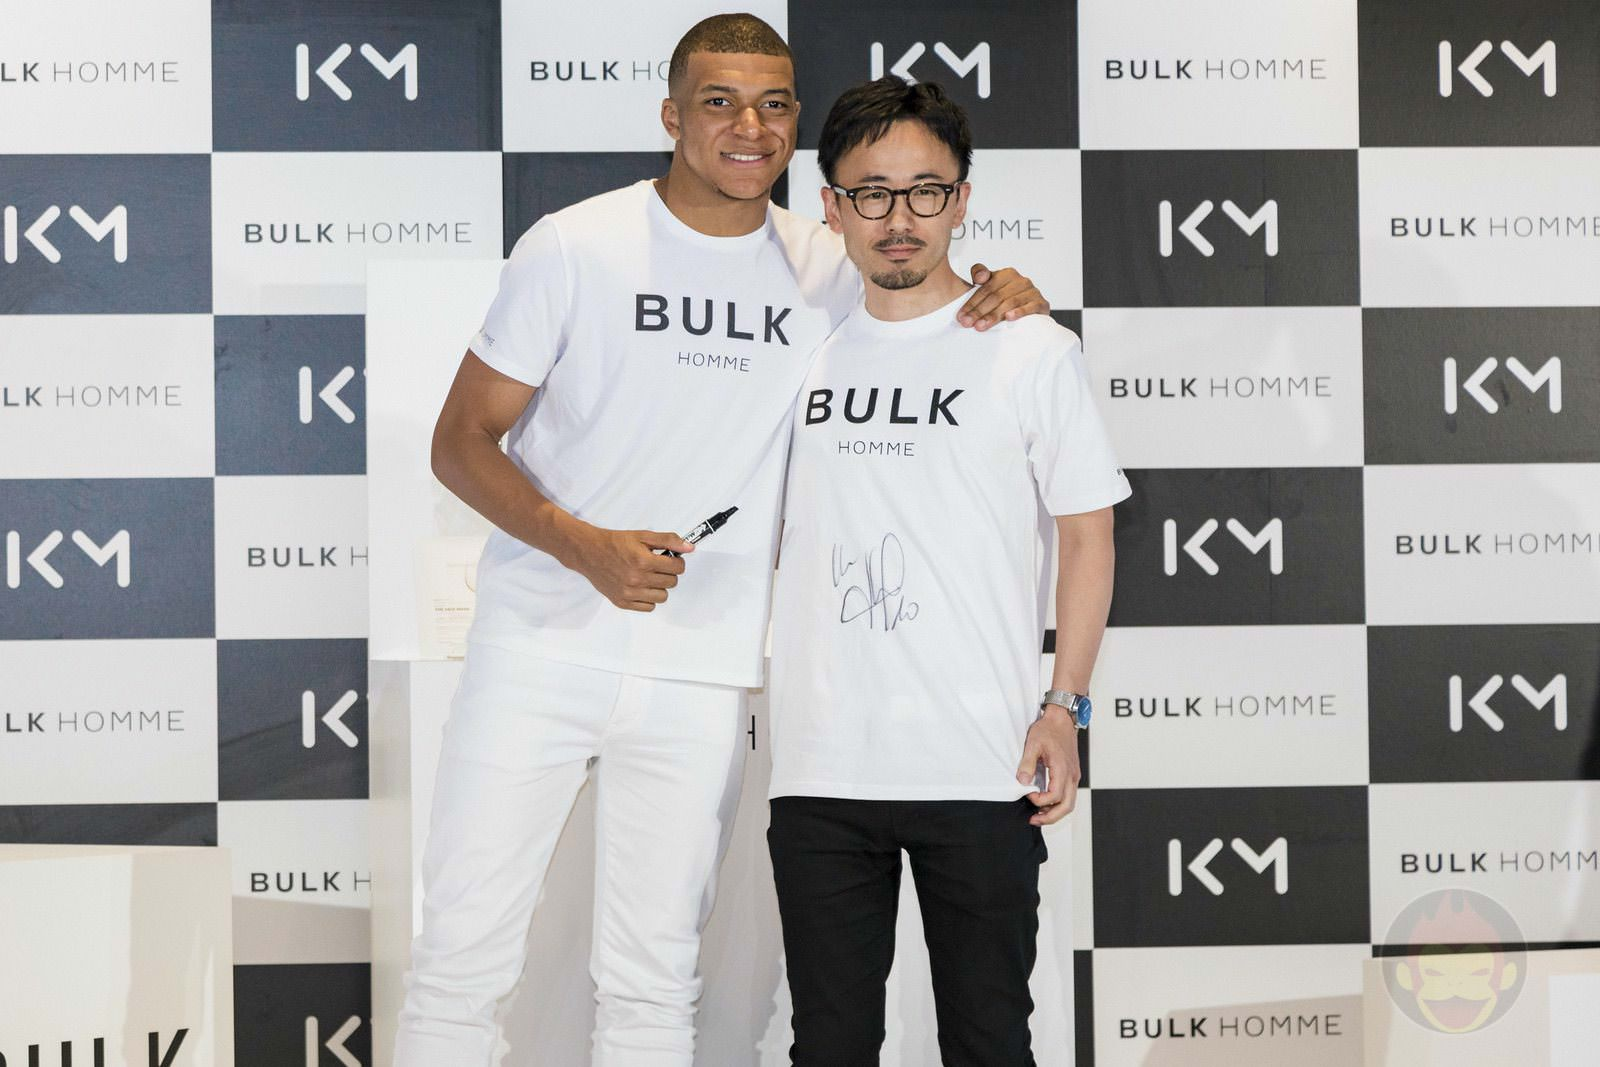 BULK-HOMME-Pop-Up-Store-07.jpg